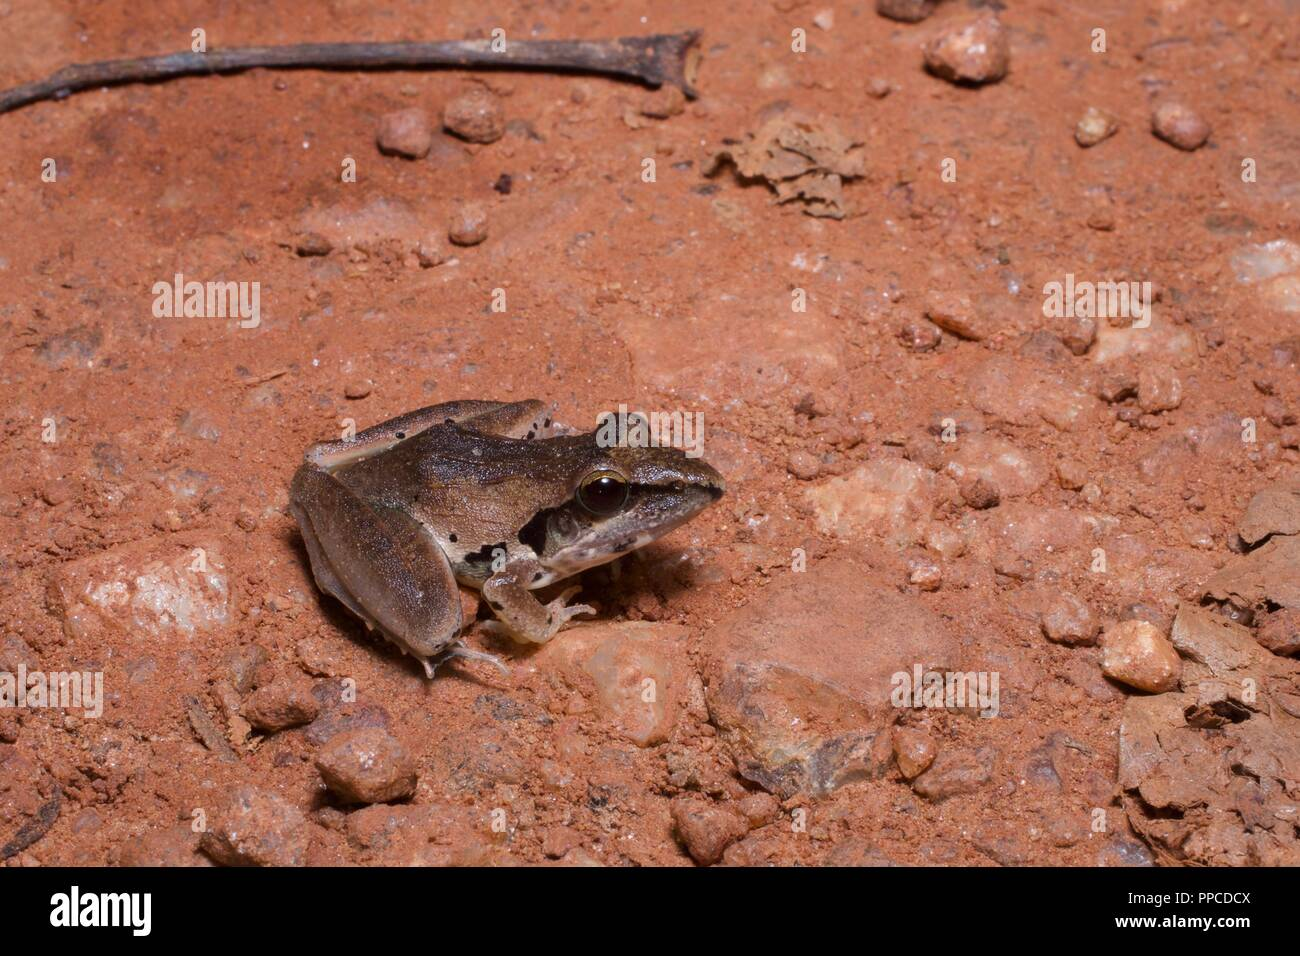 A Snouted Grassland Frog (Ptychadena longirostris) on a dirt path at night in Bobiri Forest Reserve, Ghana, Africa - Stock Image